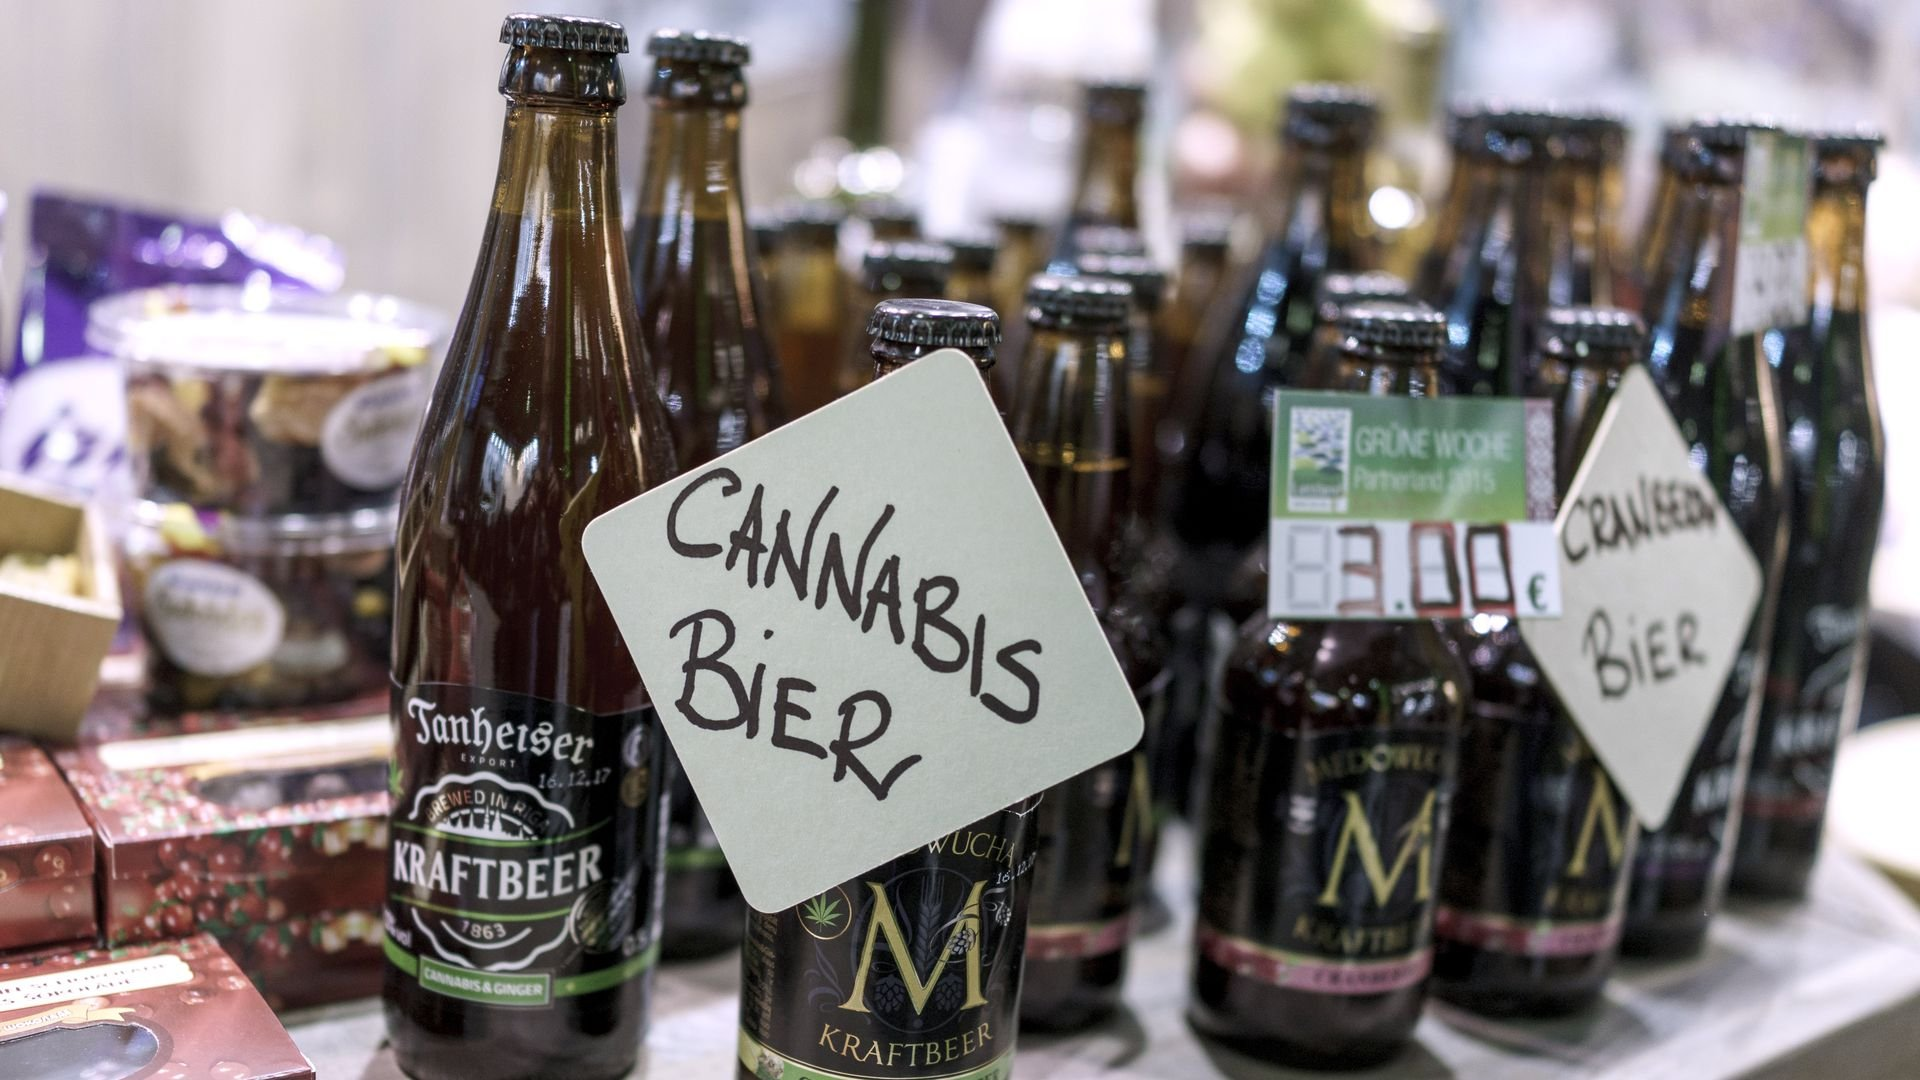 Alcohol companies are seeing green in weed